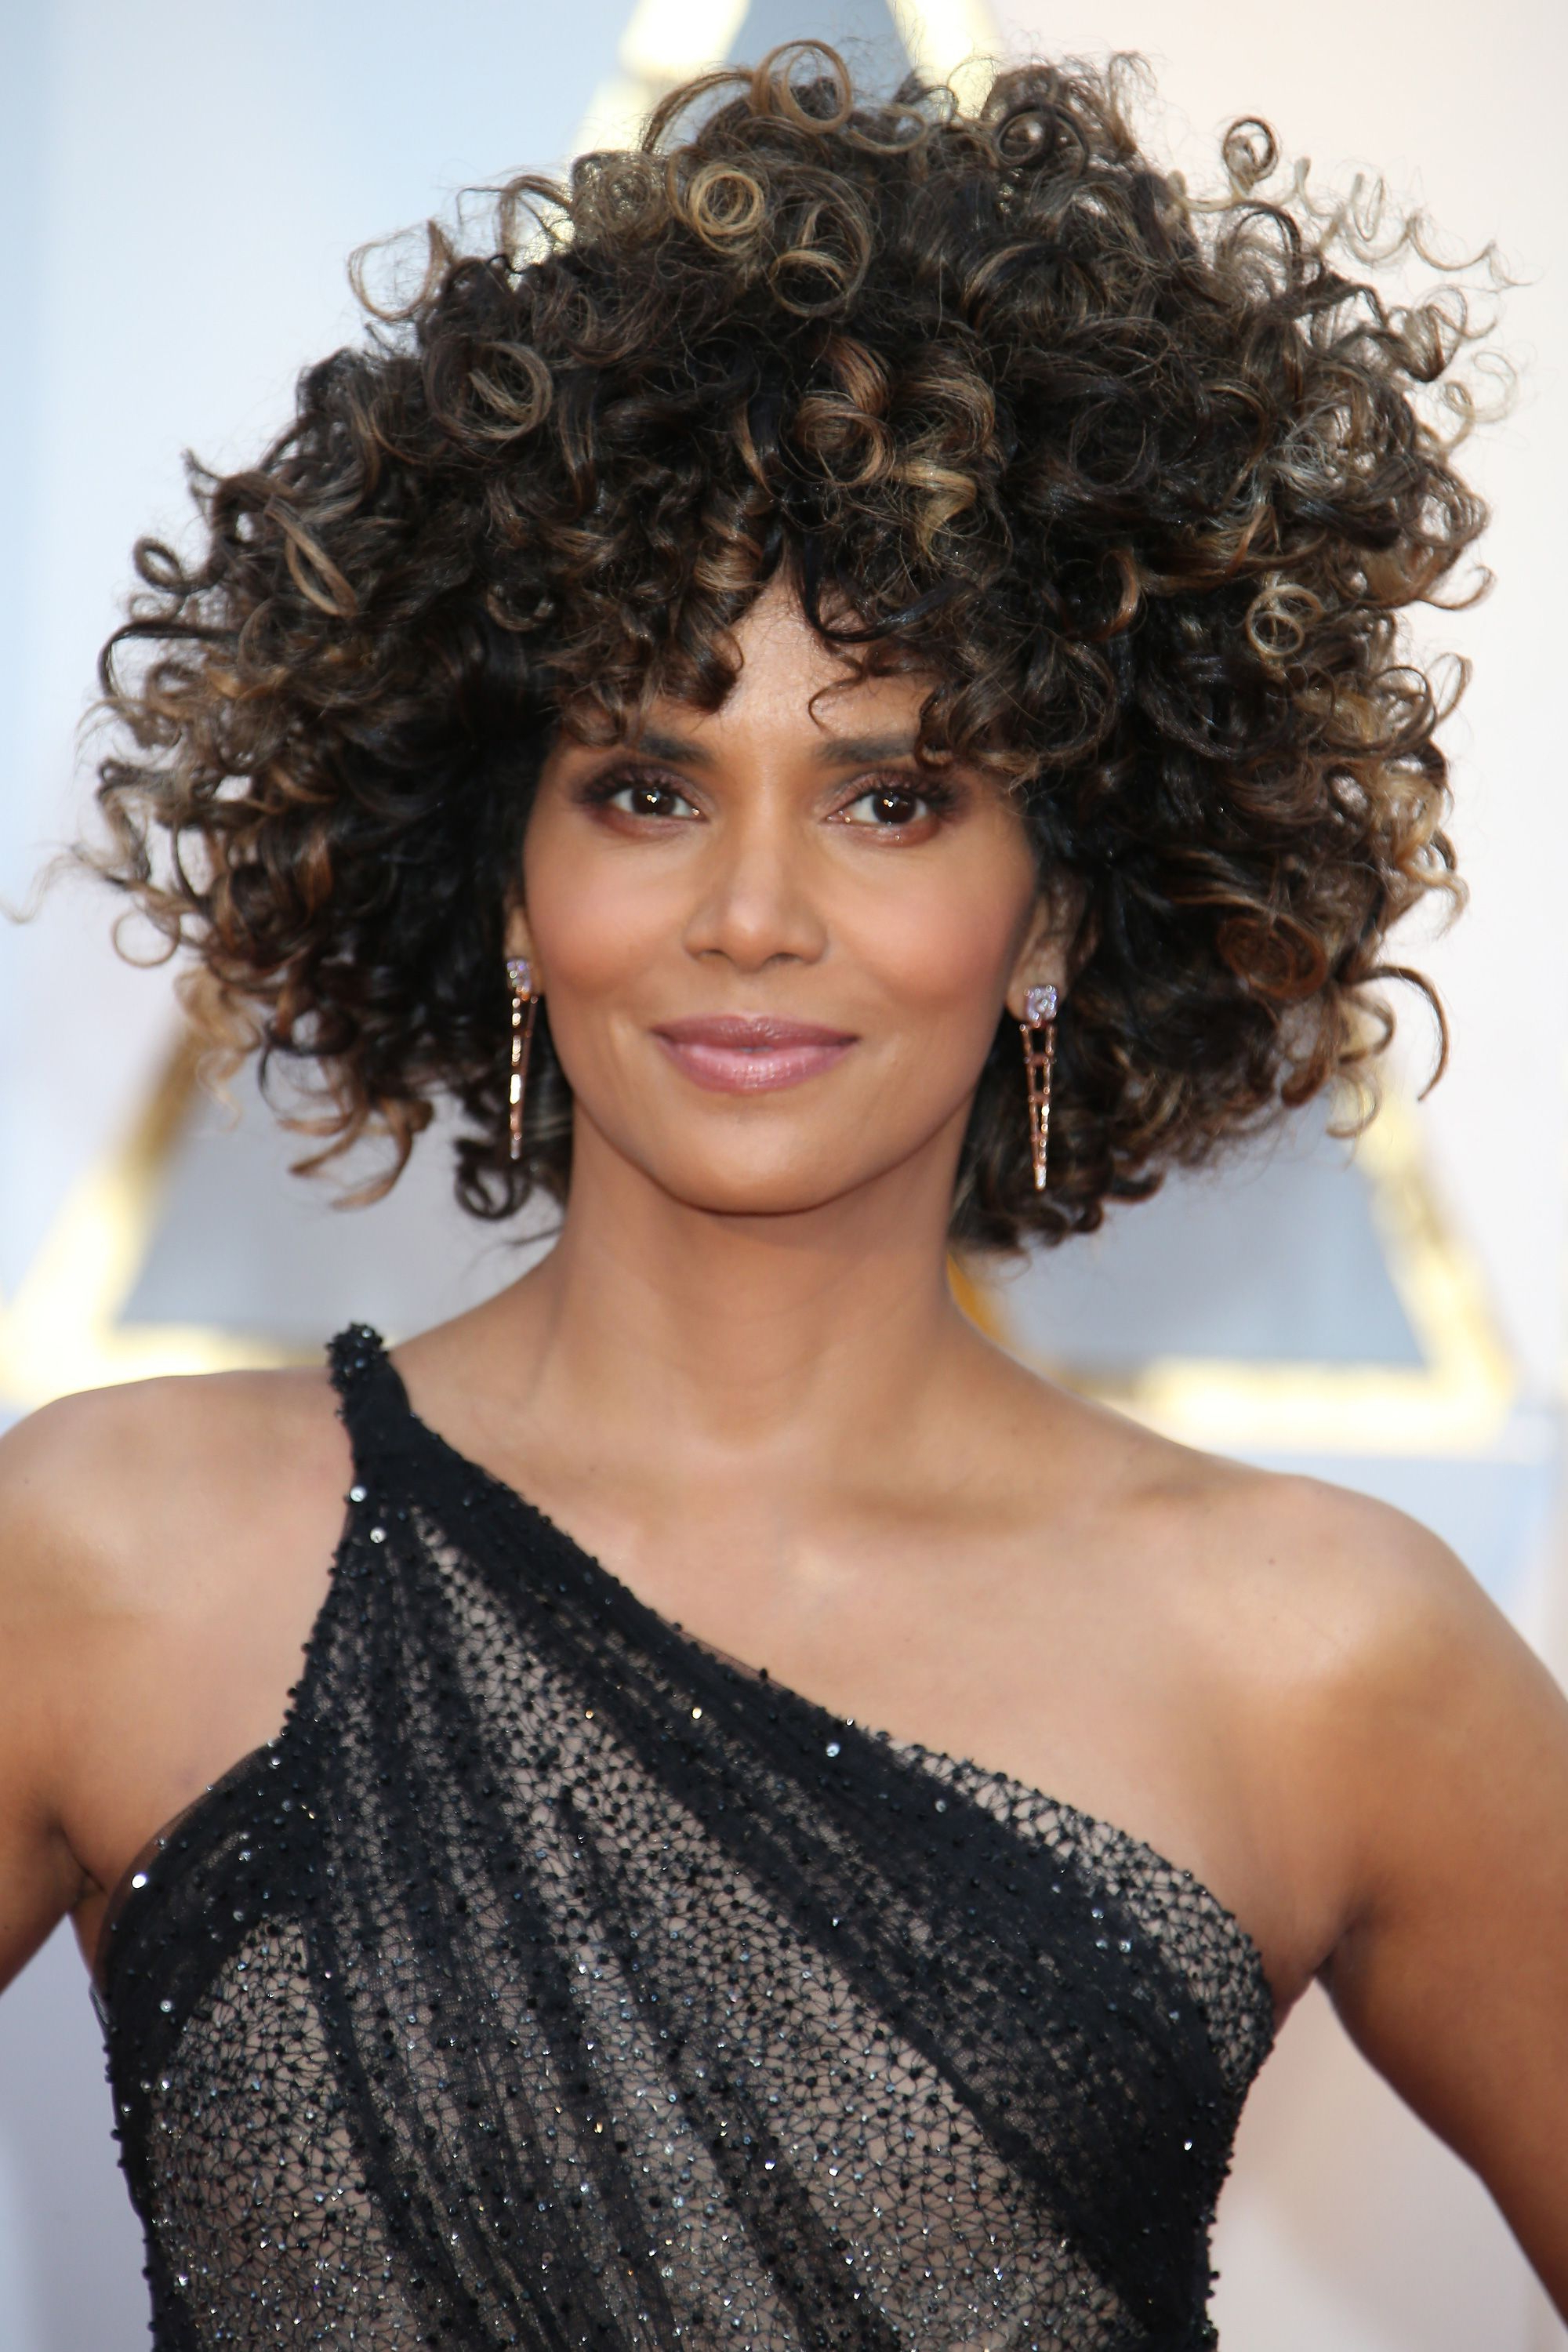 42 Easy Curly Hairstyles – Short, Medium, And Long Haircuts For Pertaining To Current Medium Haircuts For Relaxed Hair (View 5 of 20)